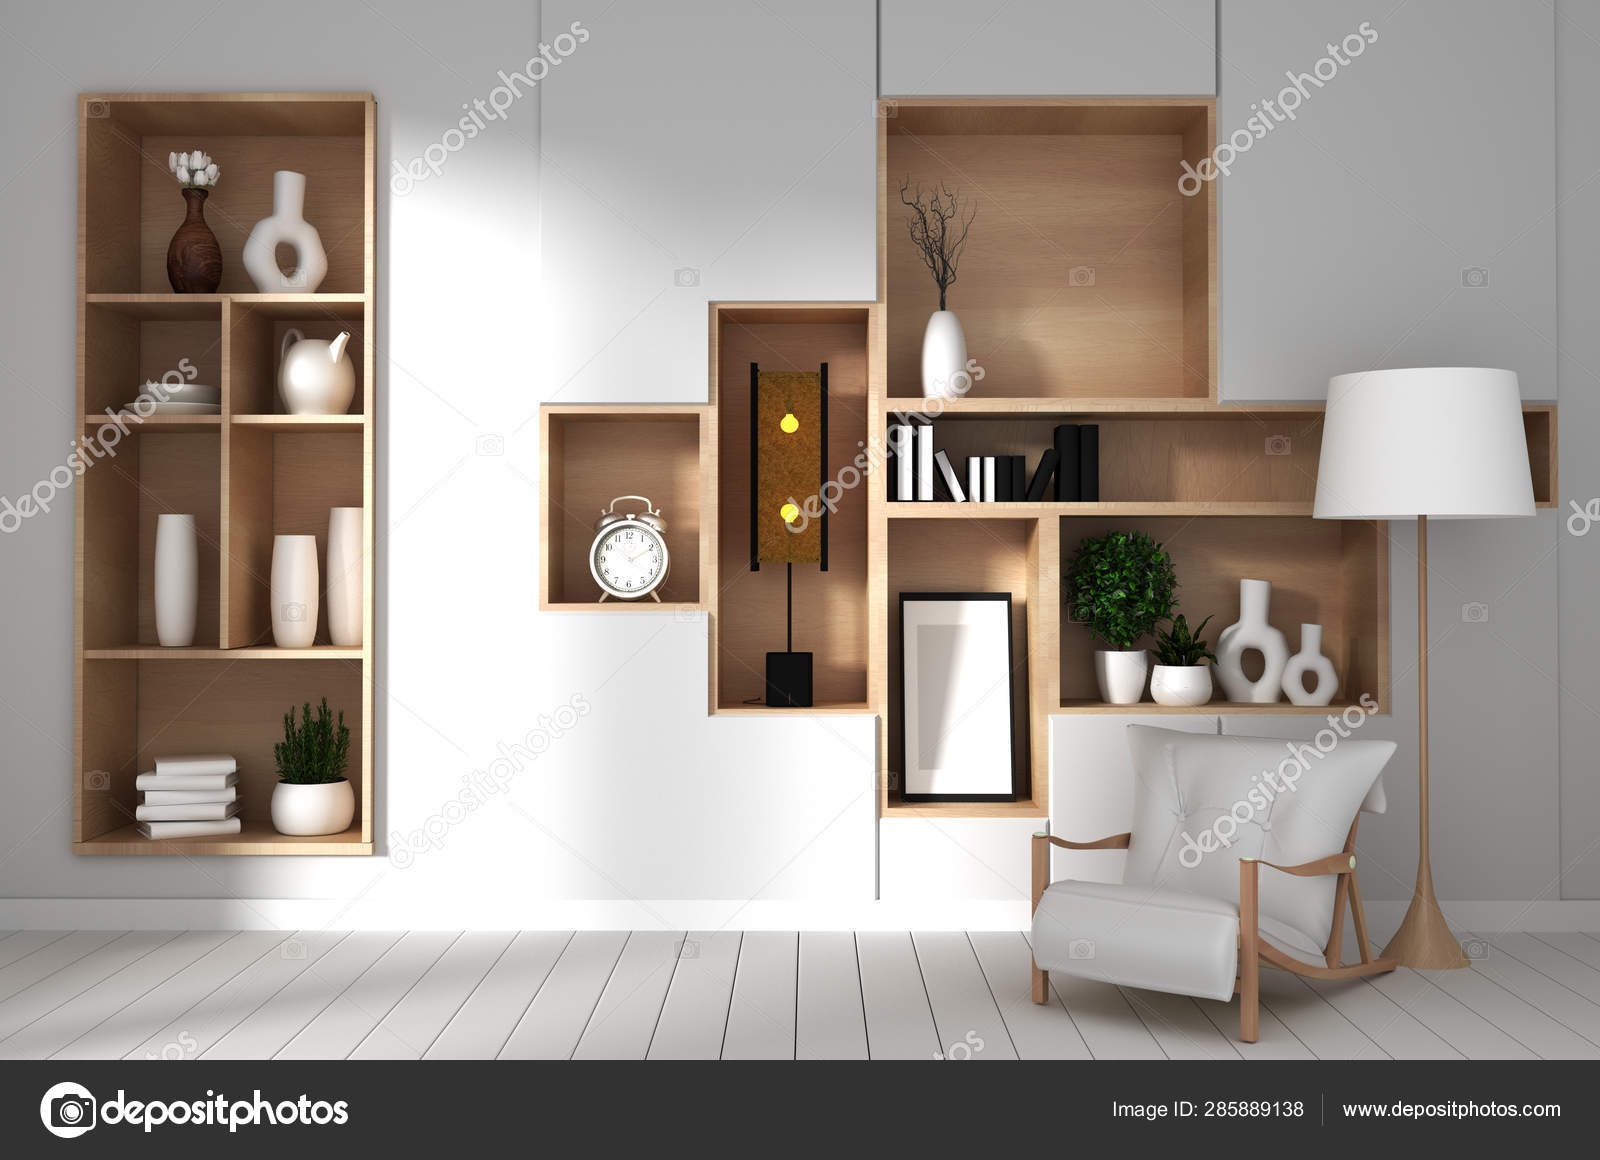 Japan White Room Interior Design White Living Room 3d Illustrat Stock Photo C Minny0012011 Gmail Com 285889138